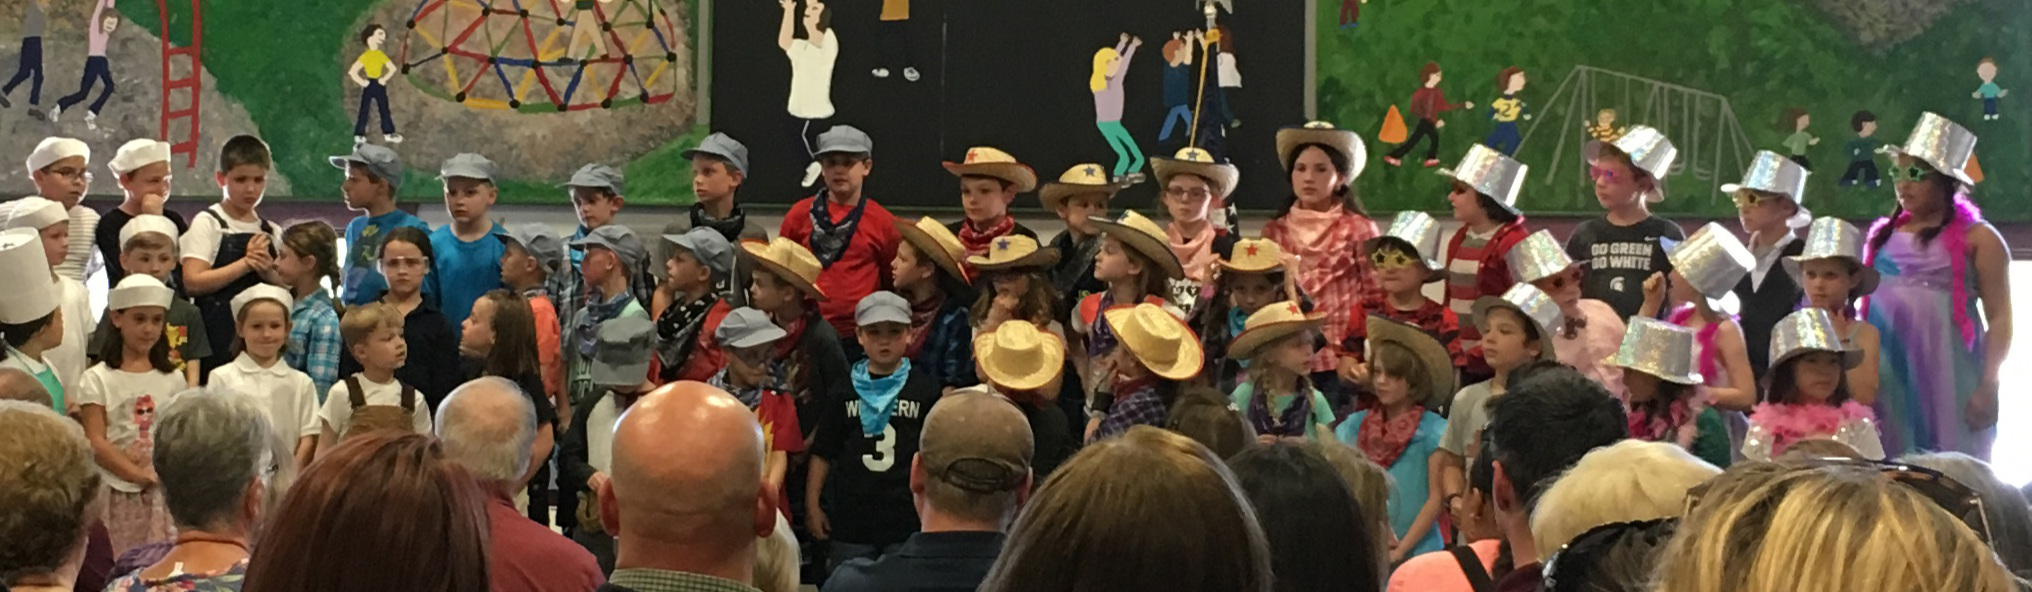 Monkey Boy's spring performance. He's one of the movie stars in the glittery silver hat on the top row.